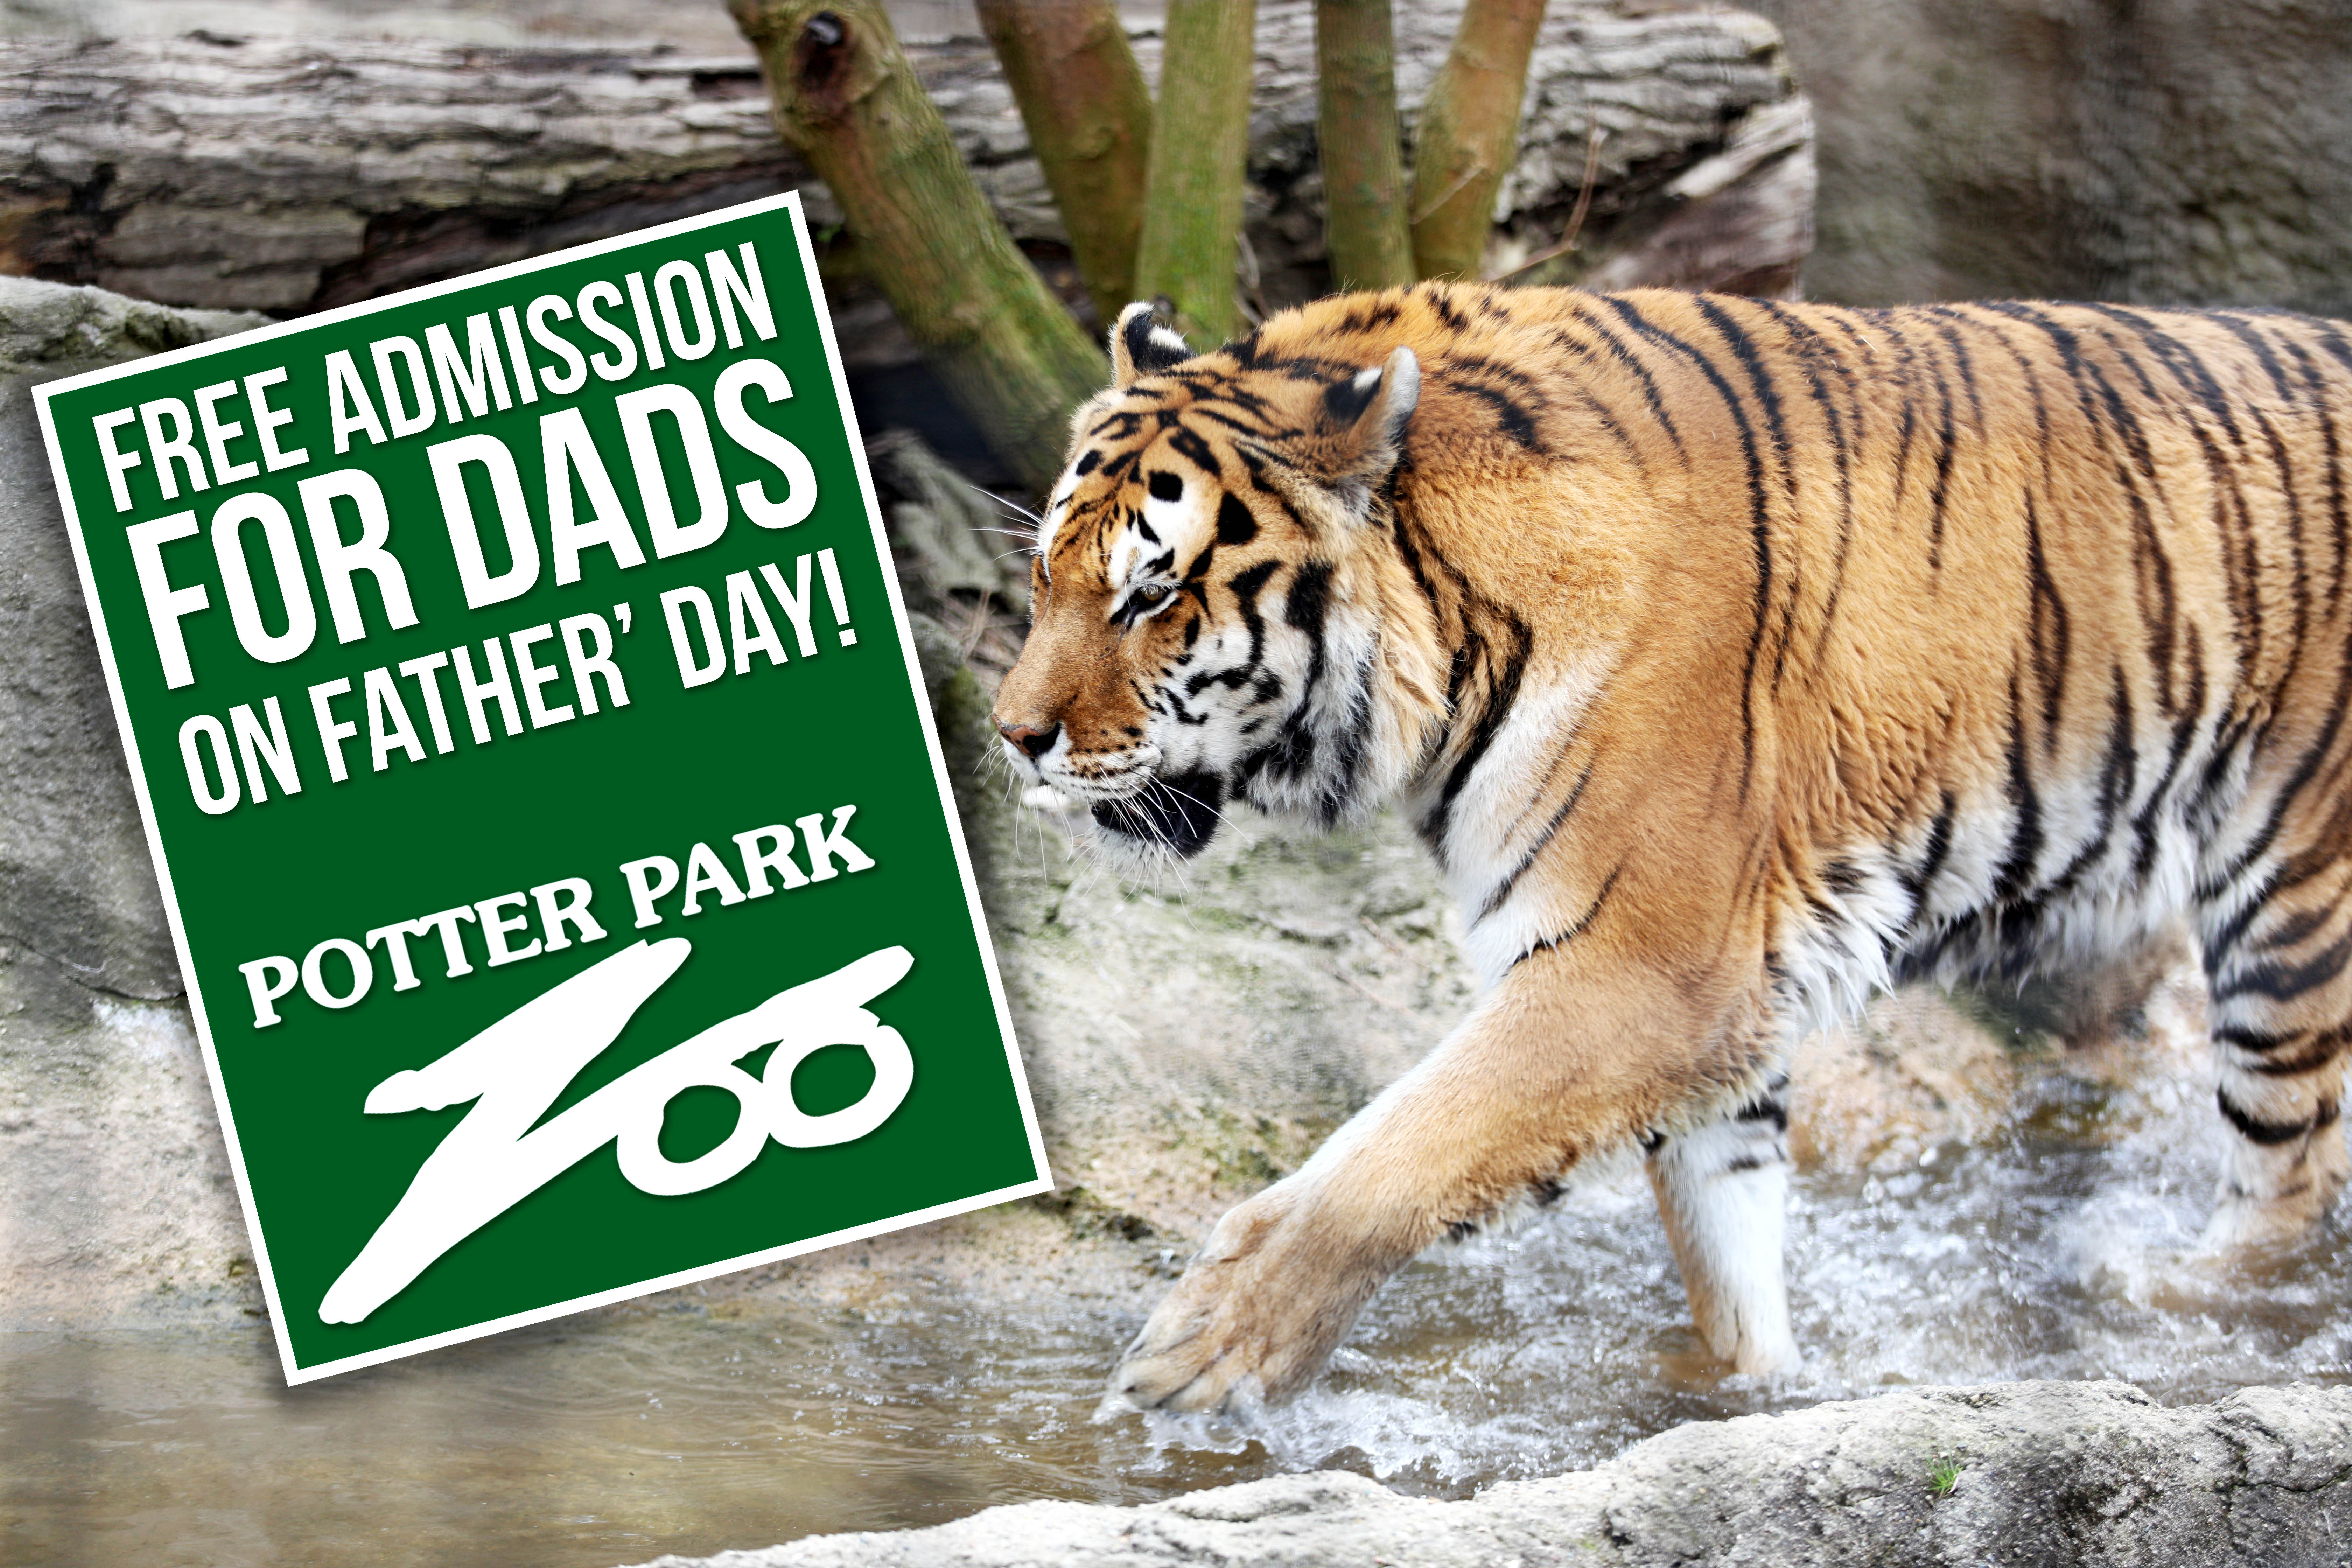 Free Admission for Dads banner